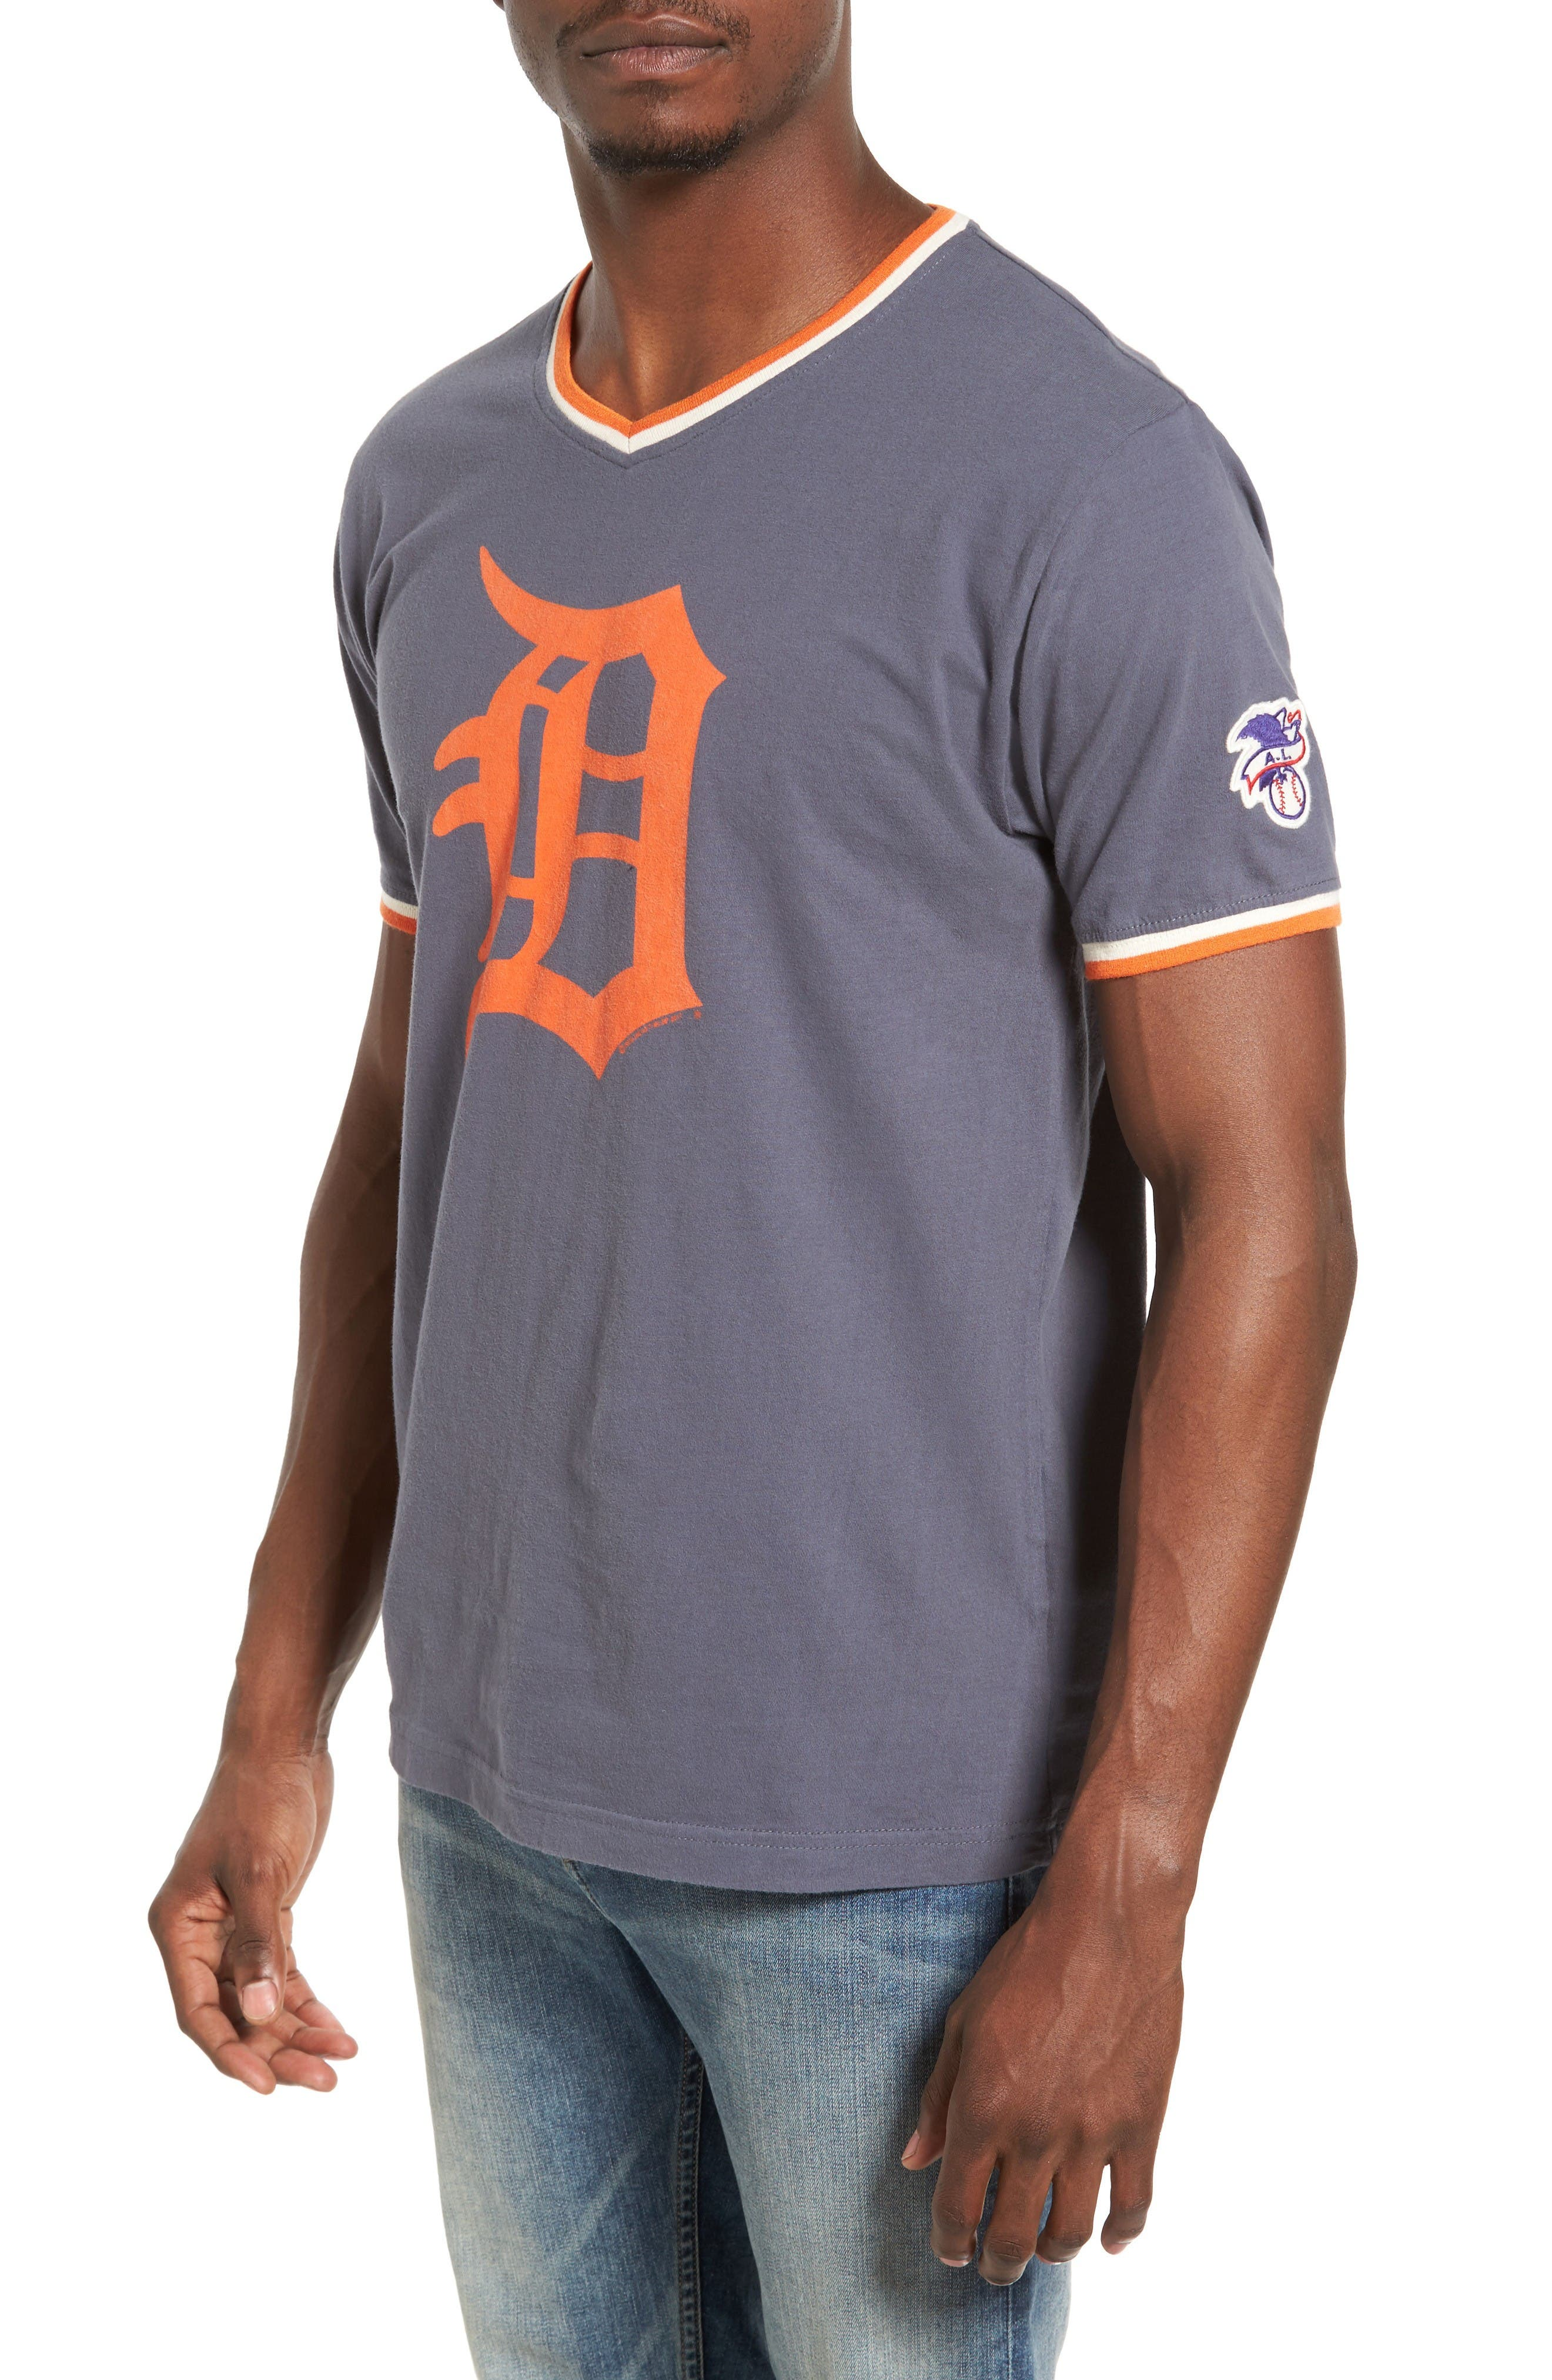 Eastwood Detroit Tigers T-Shirt,                         Main,                         color, Navy